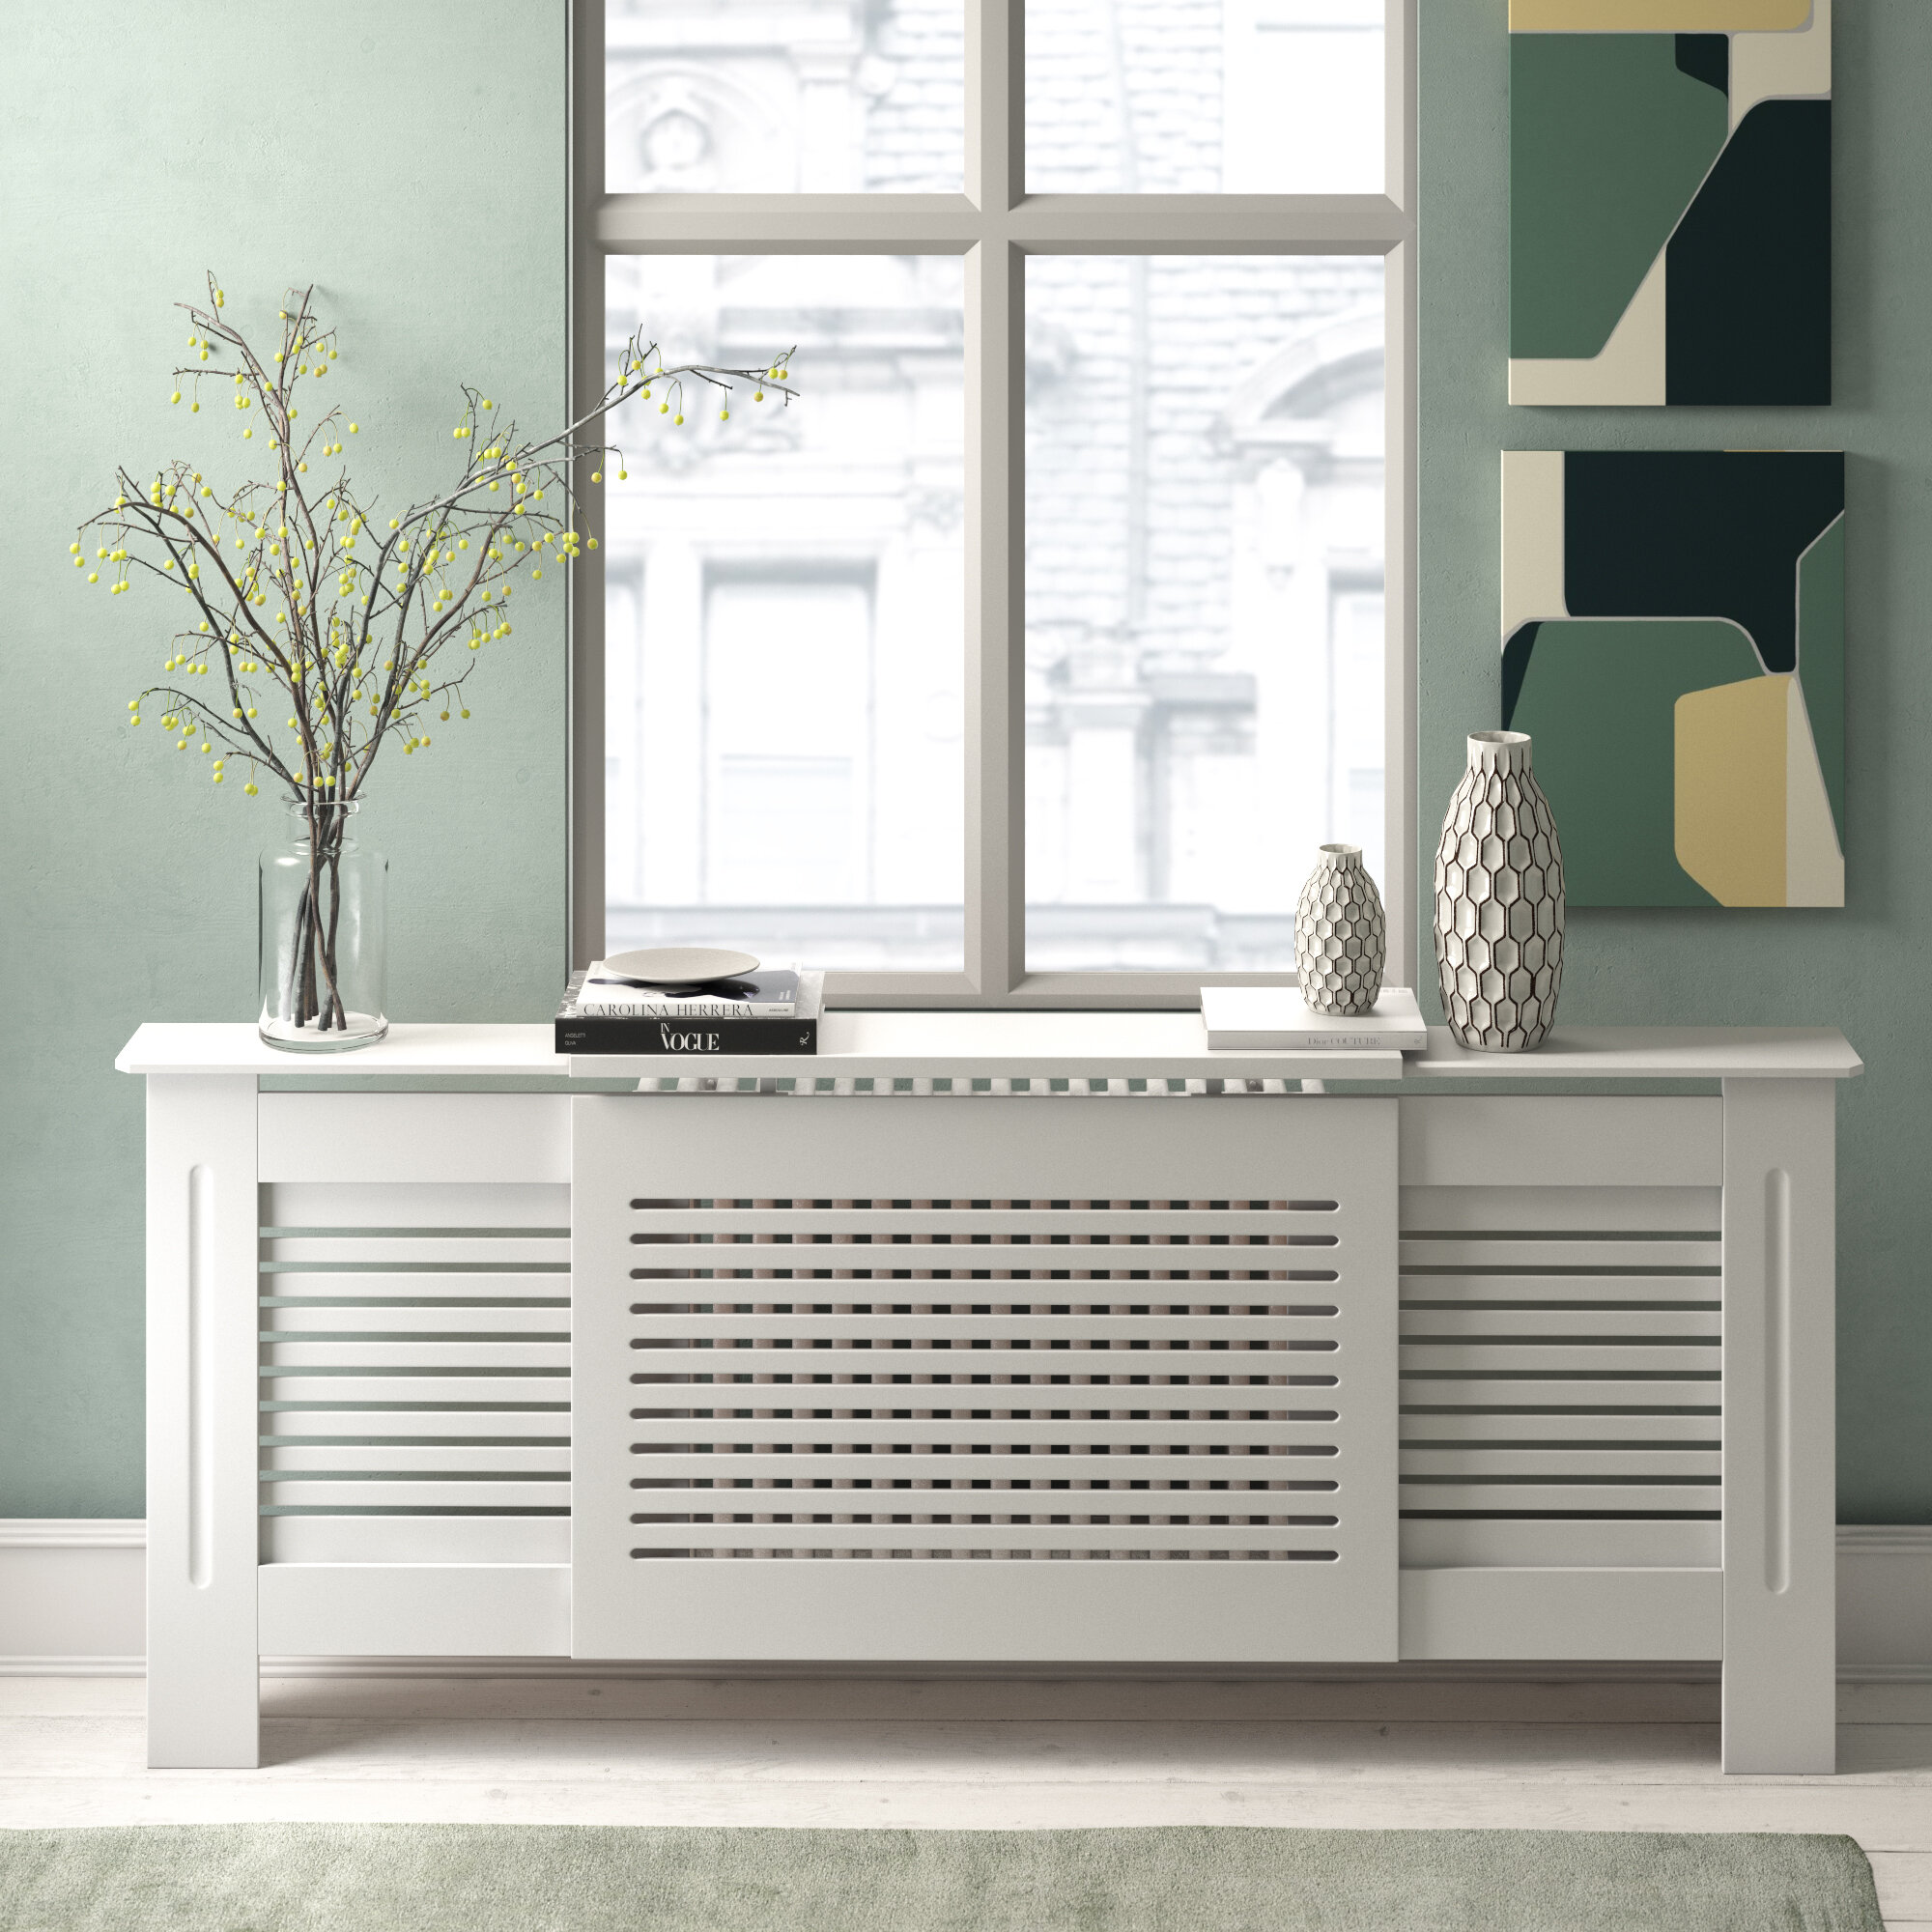 Belfry Heating Humberto Extra Large Radiator Cover Reviews Wayfair Co Uk